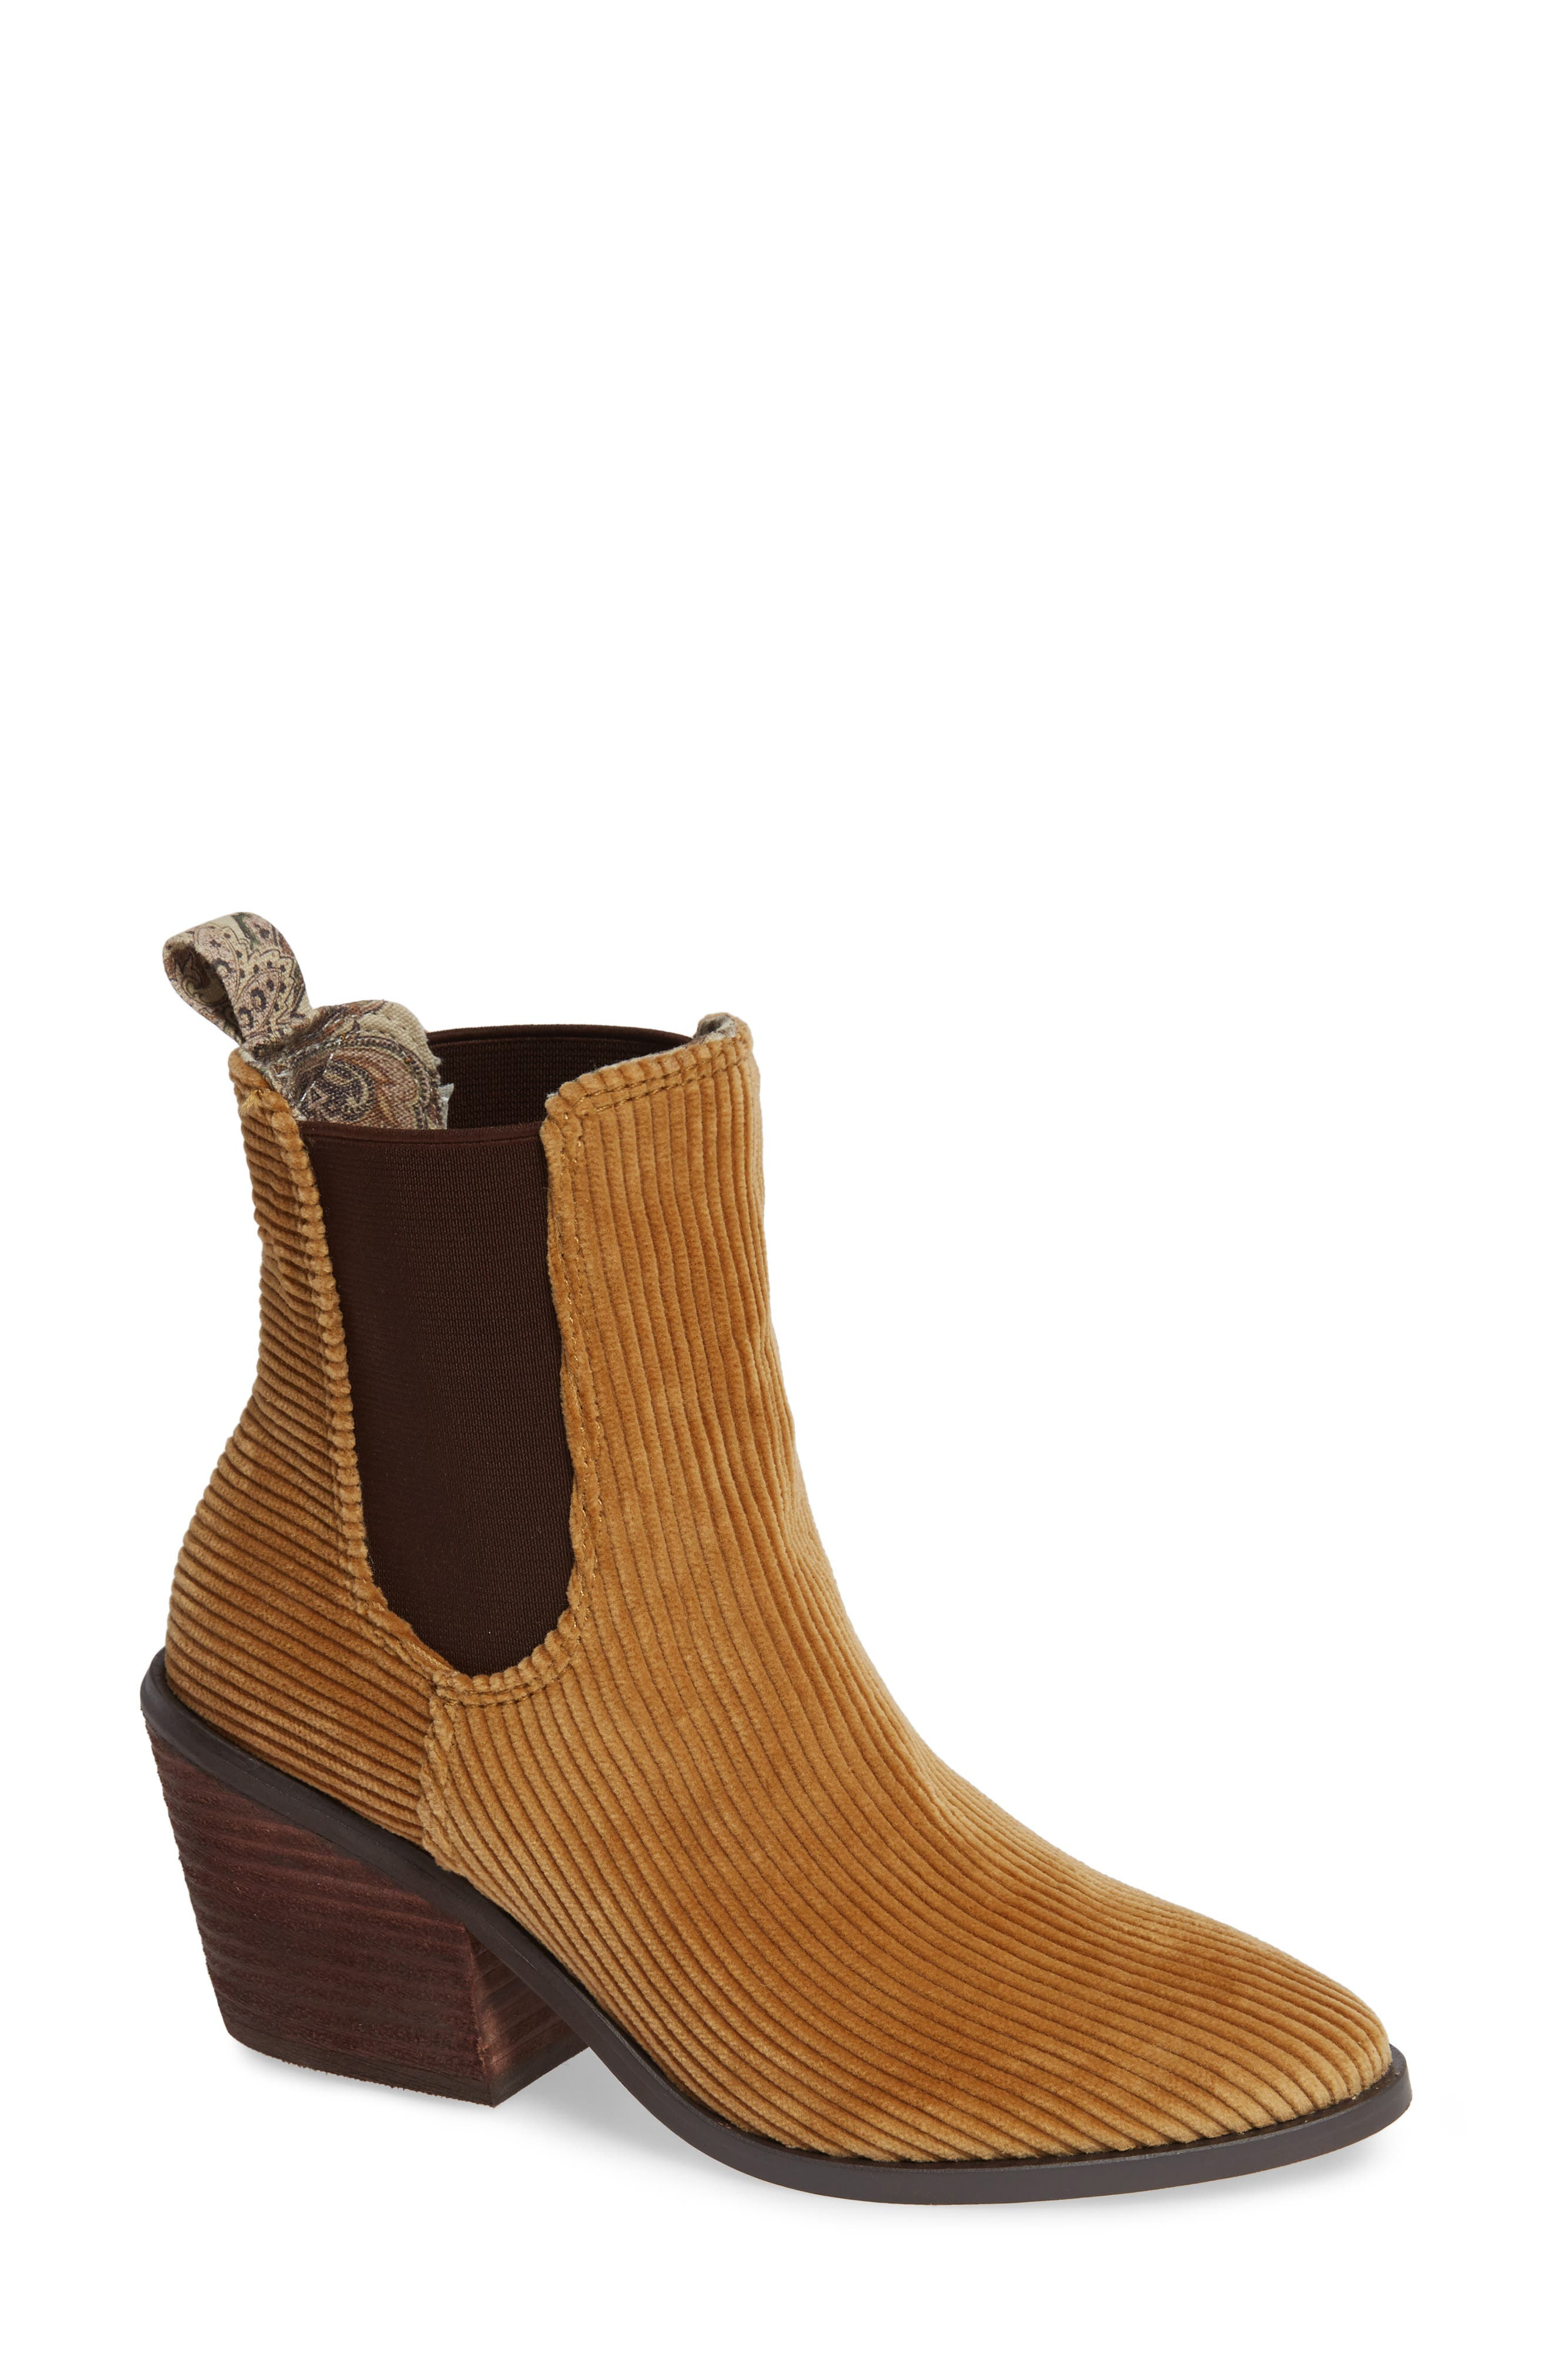 BAND OF GYPSIES Shadow Chelsea Boot in Tan Corduroy